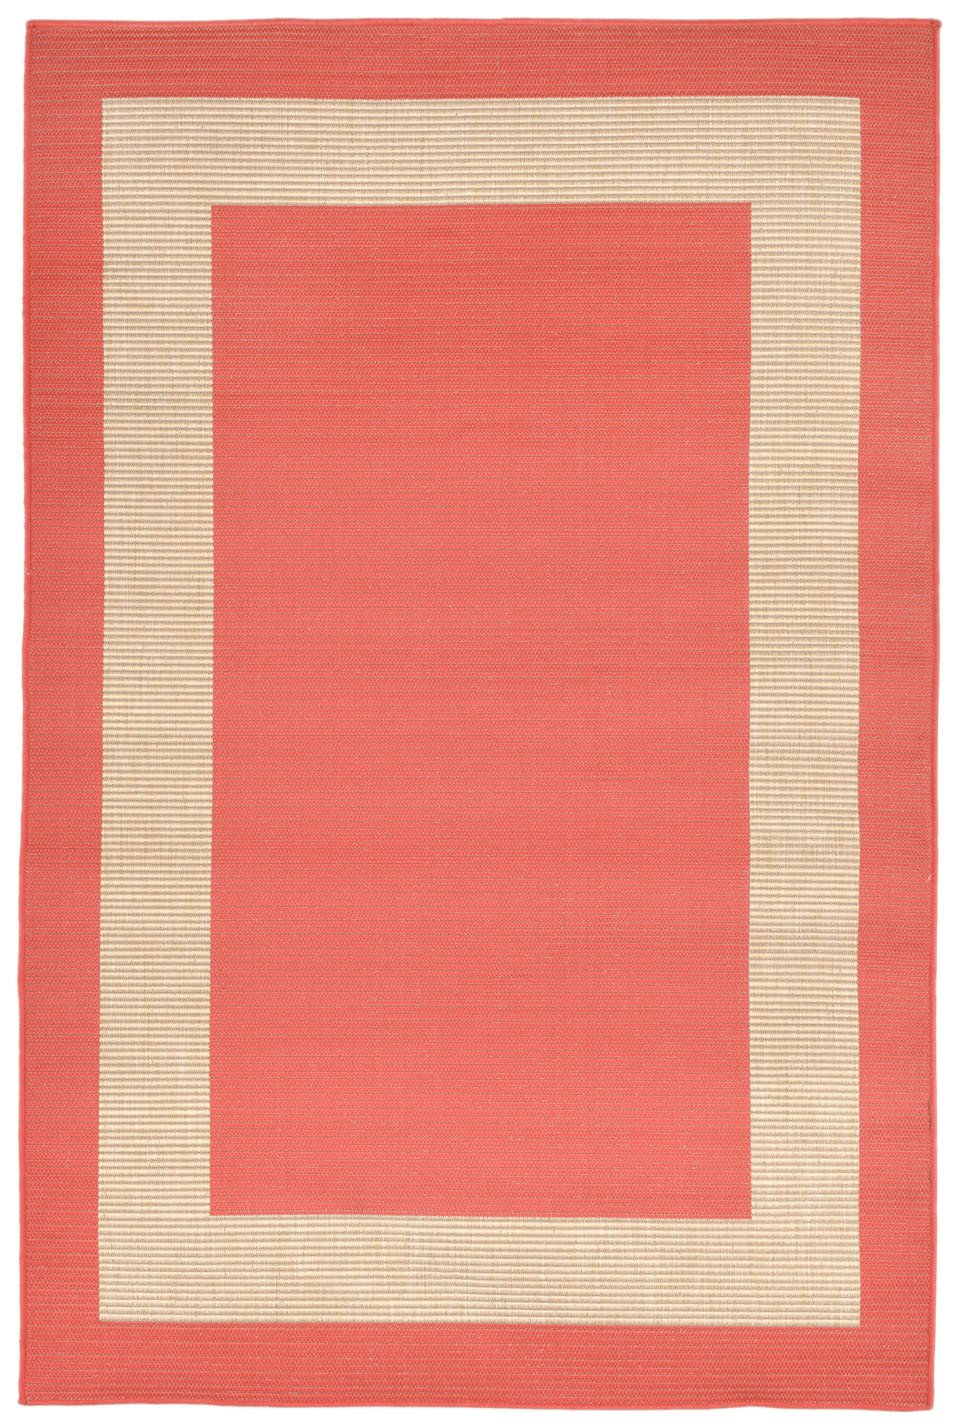 Trans-Ocean Imports TER45178627 Terrace Collection Orange Finish Everywear Rug from Trans-Ocean